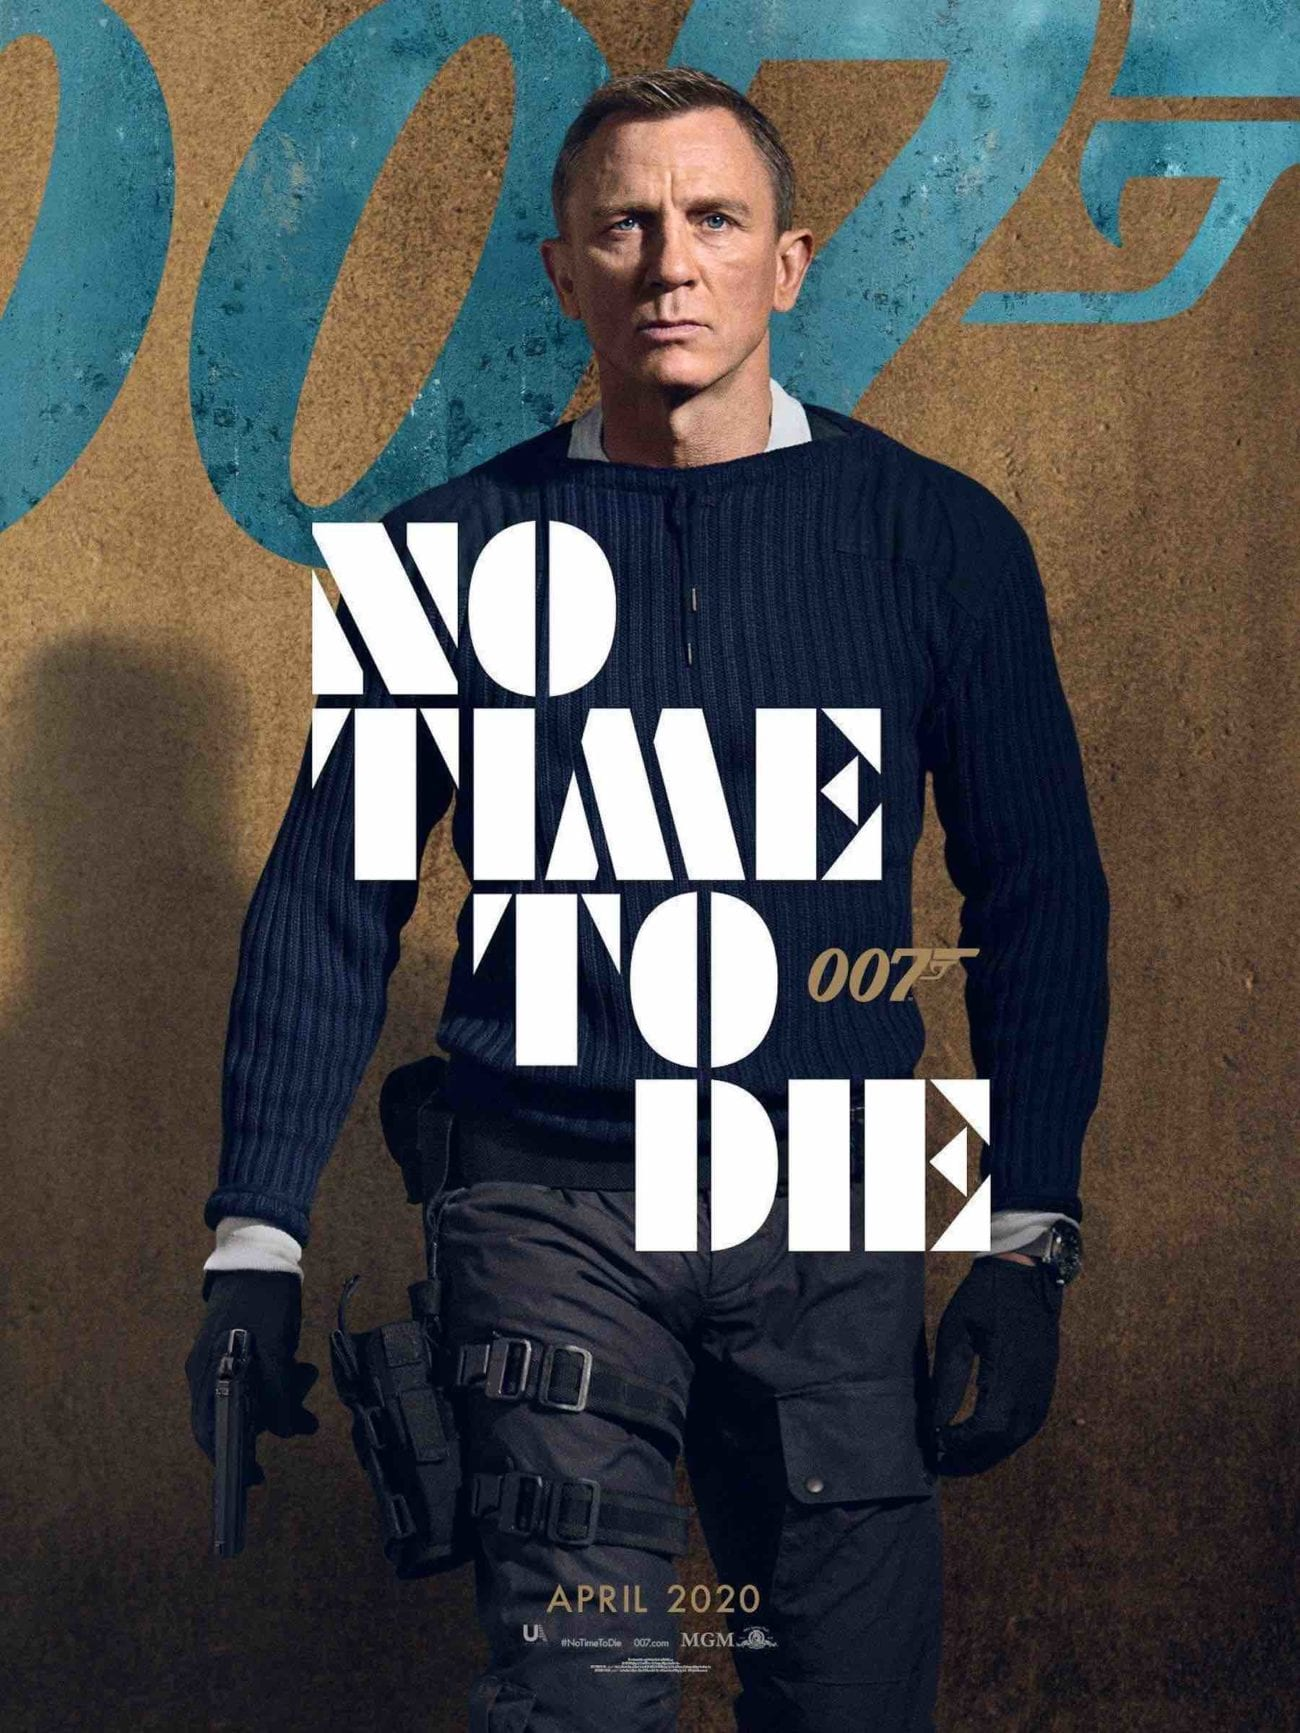 With 'No Time to Die' set to be Daniel Craig's final send-off as James Bond, here's everything you need to know about the upcoming film.